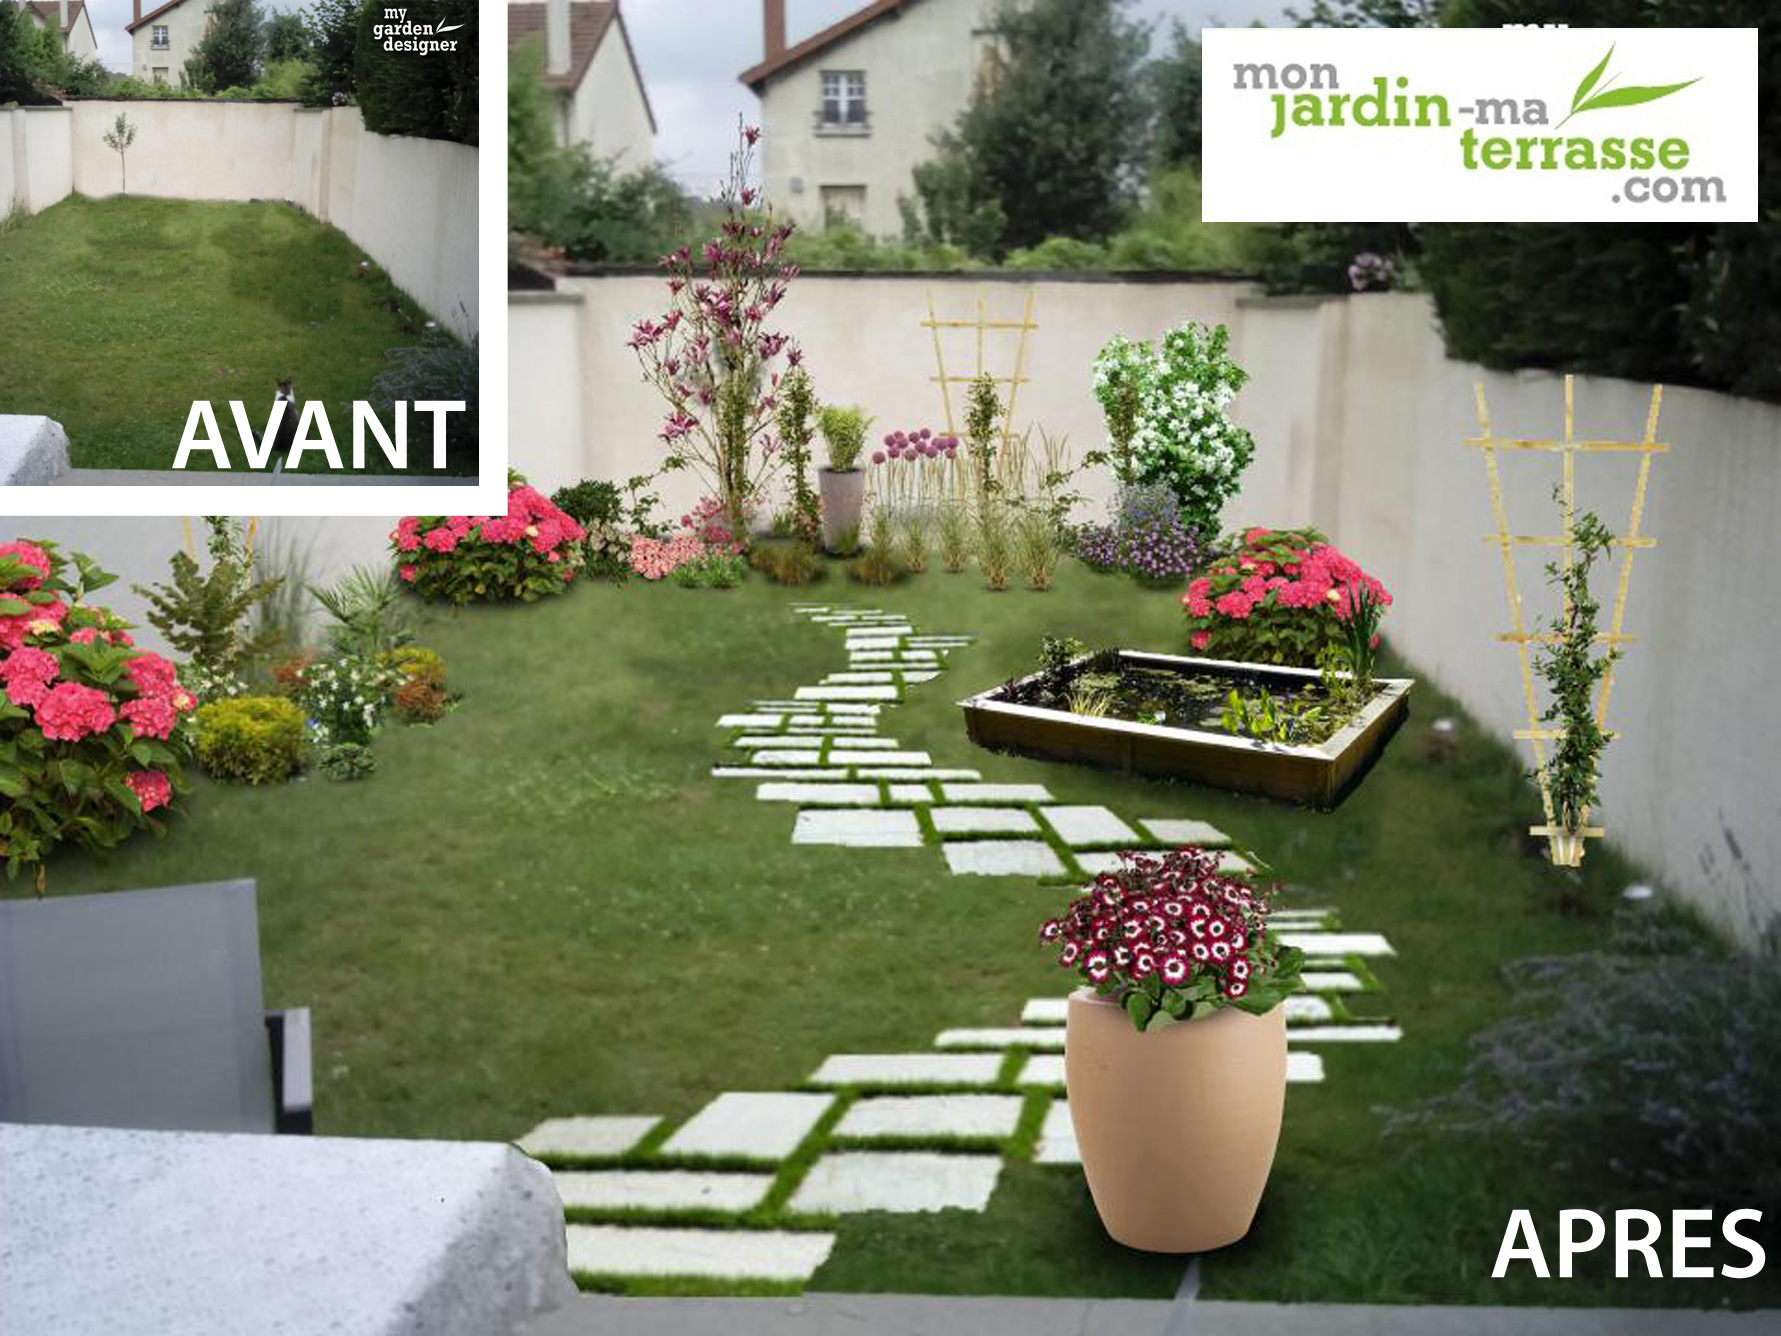 Am nager un rez de jardin en longueur monjardin for Modele amenagement jardin